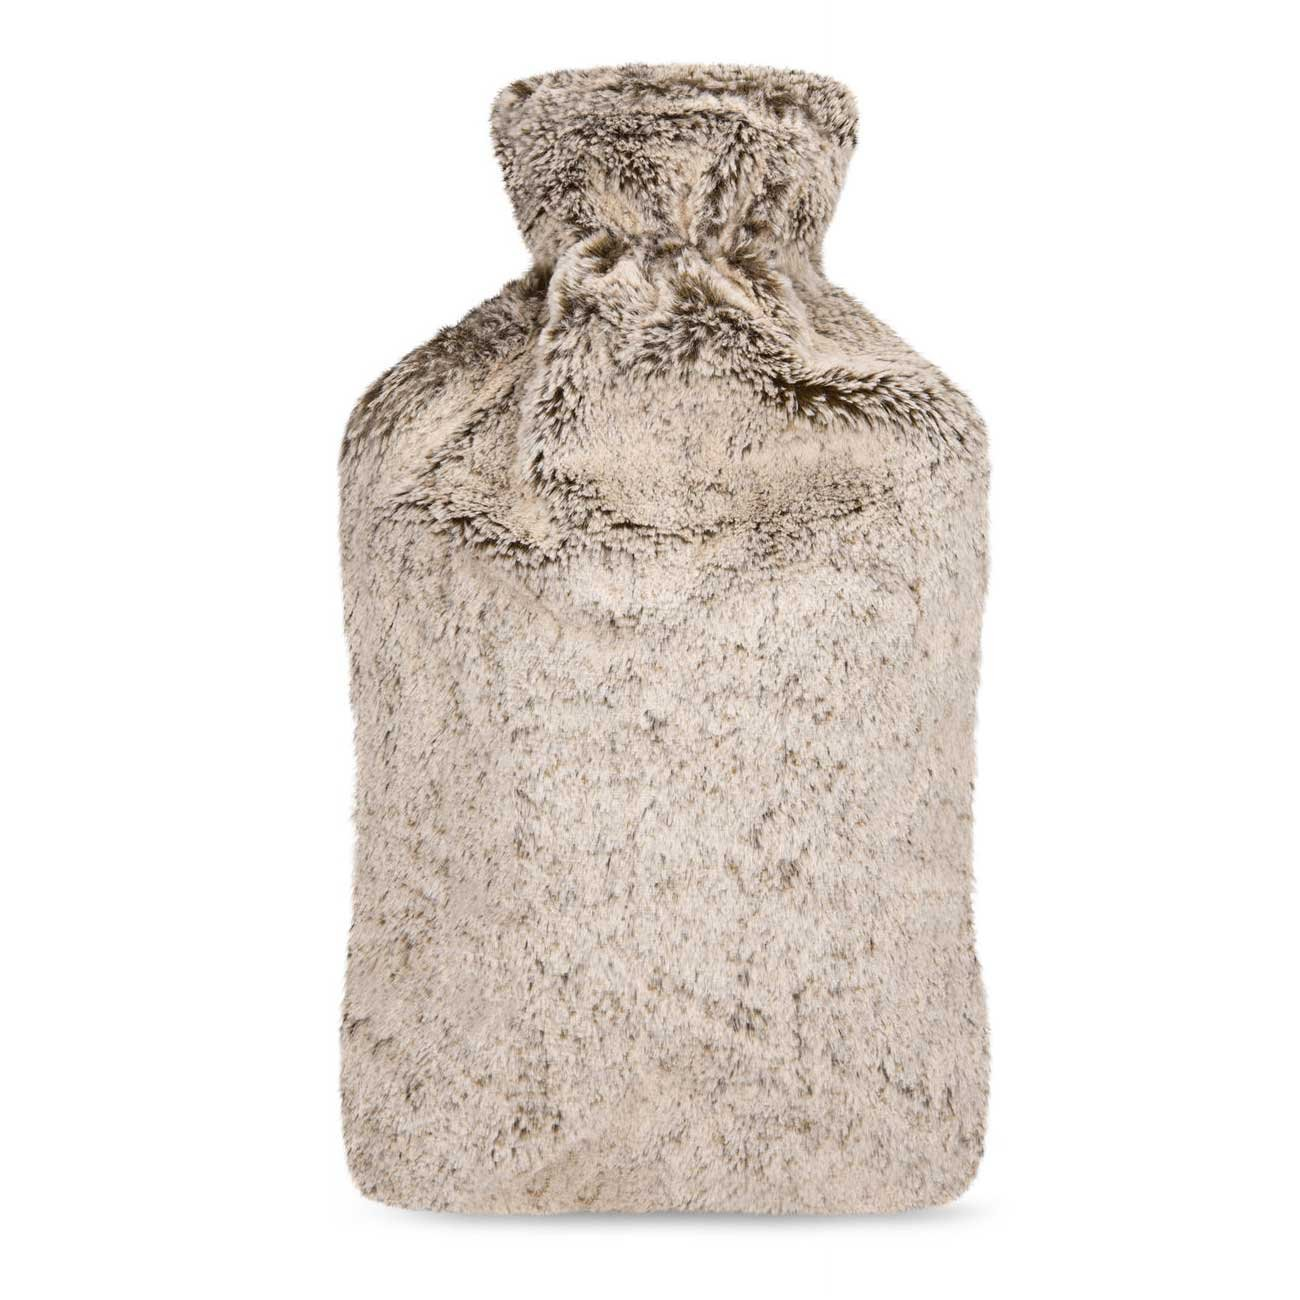 UMOI Eco Hot Water Bottle 2 Litre with High Quality Mink Fleece Cover I 35 x 21 x 4, 5 cm I 2l capacity I by UMOI (Ice-Brown)